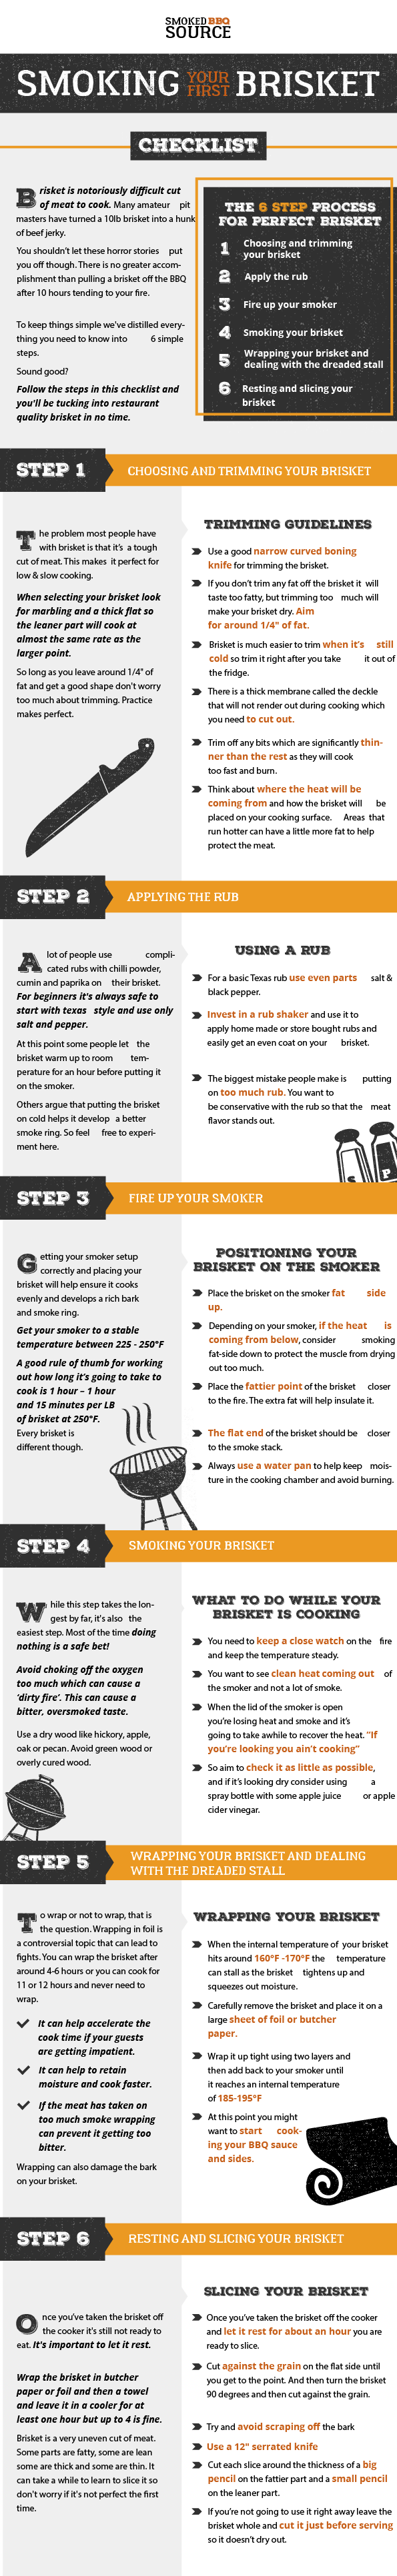 Checklist advice for barbecue brisket